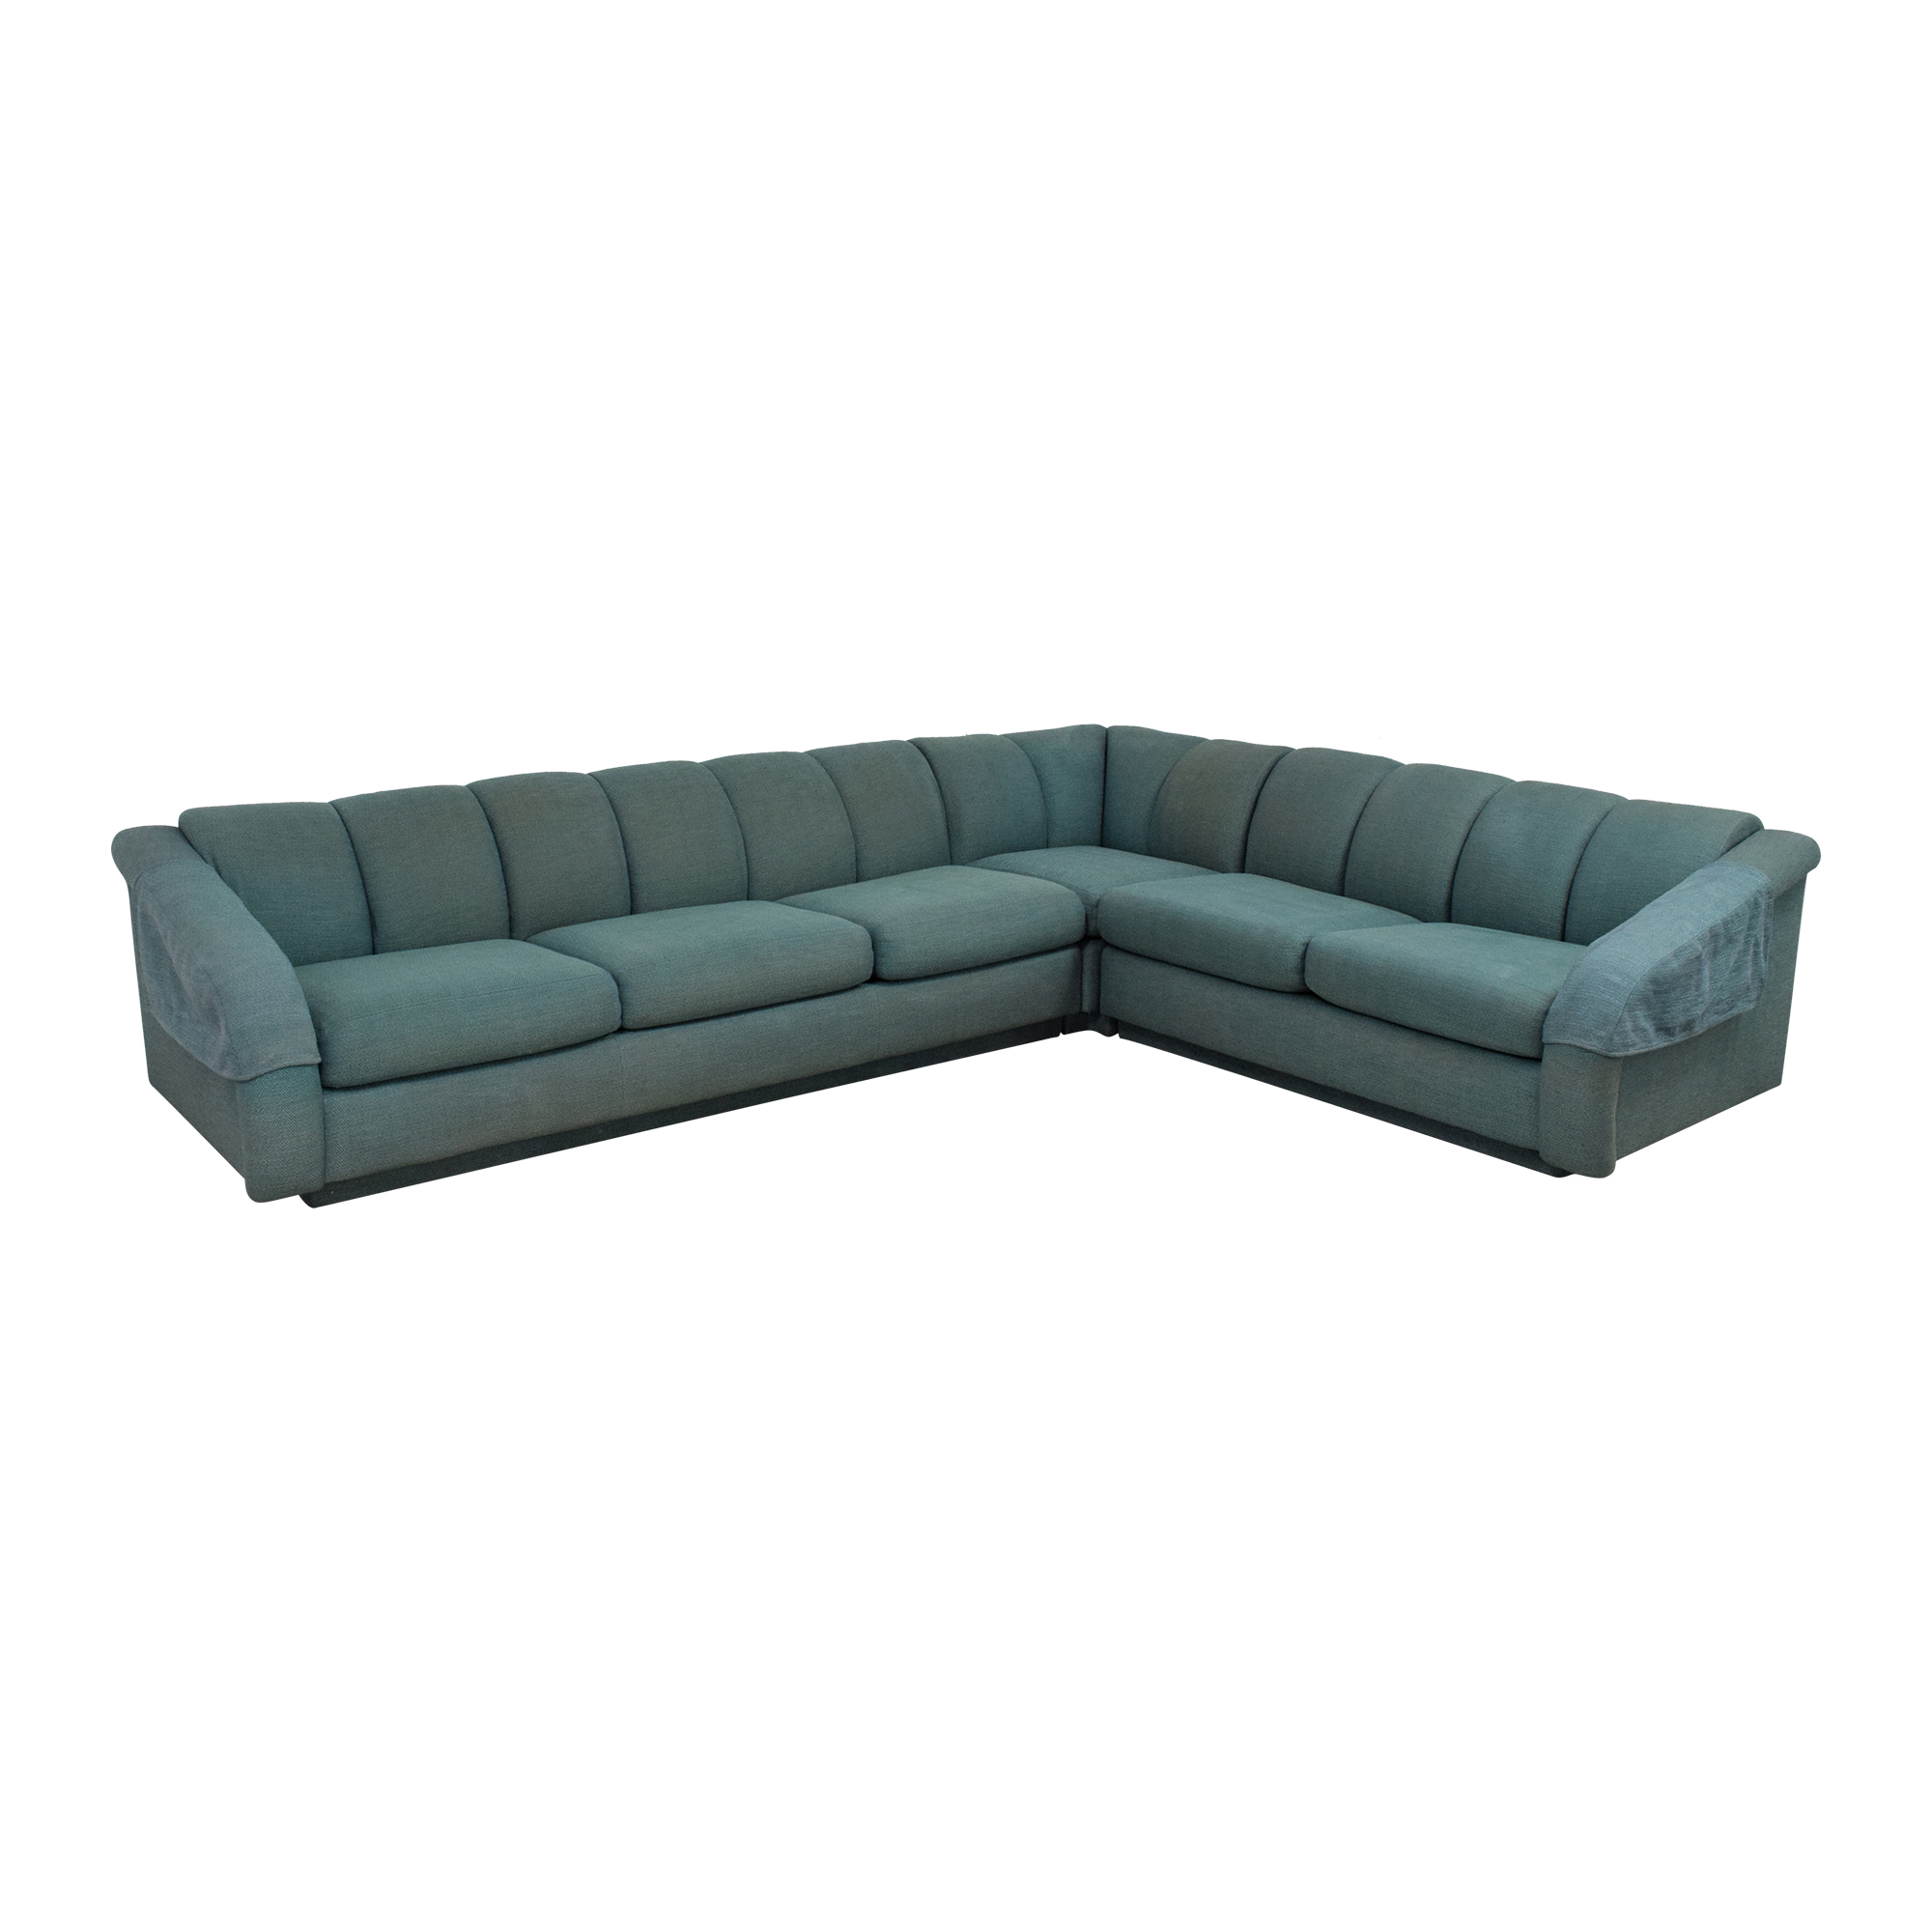 Directional Furniture Sectional Sofa / Sofas